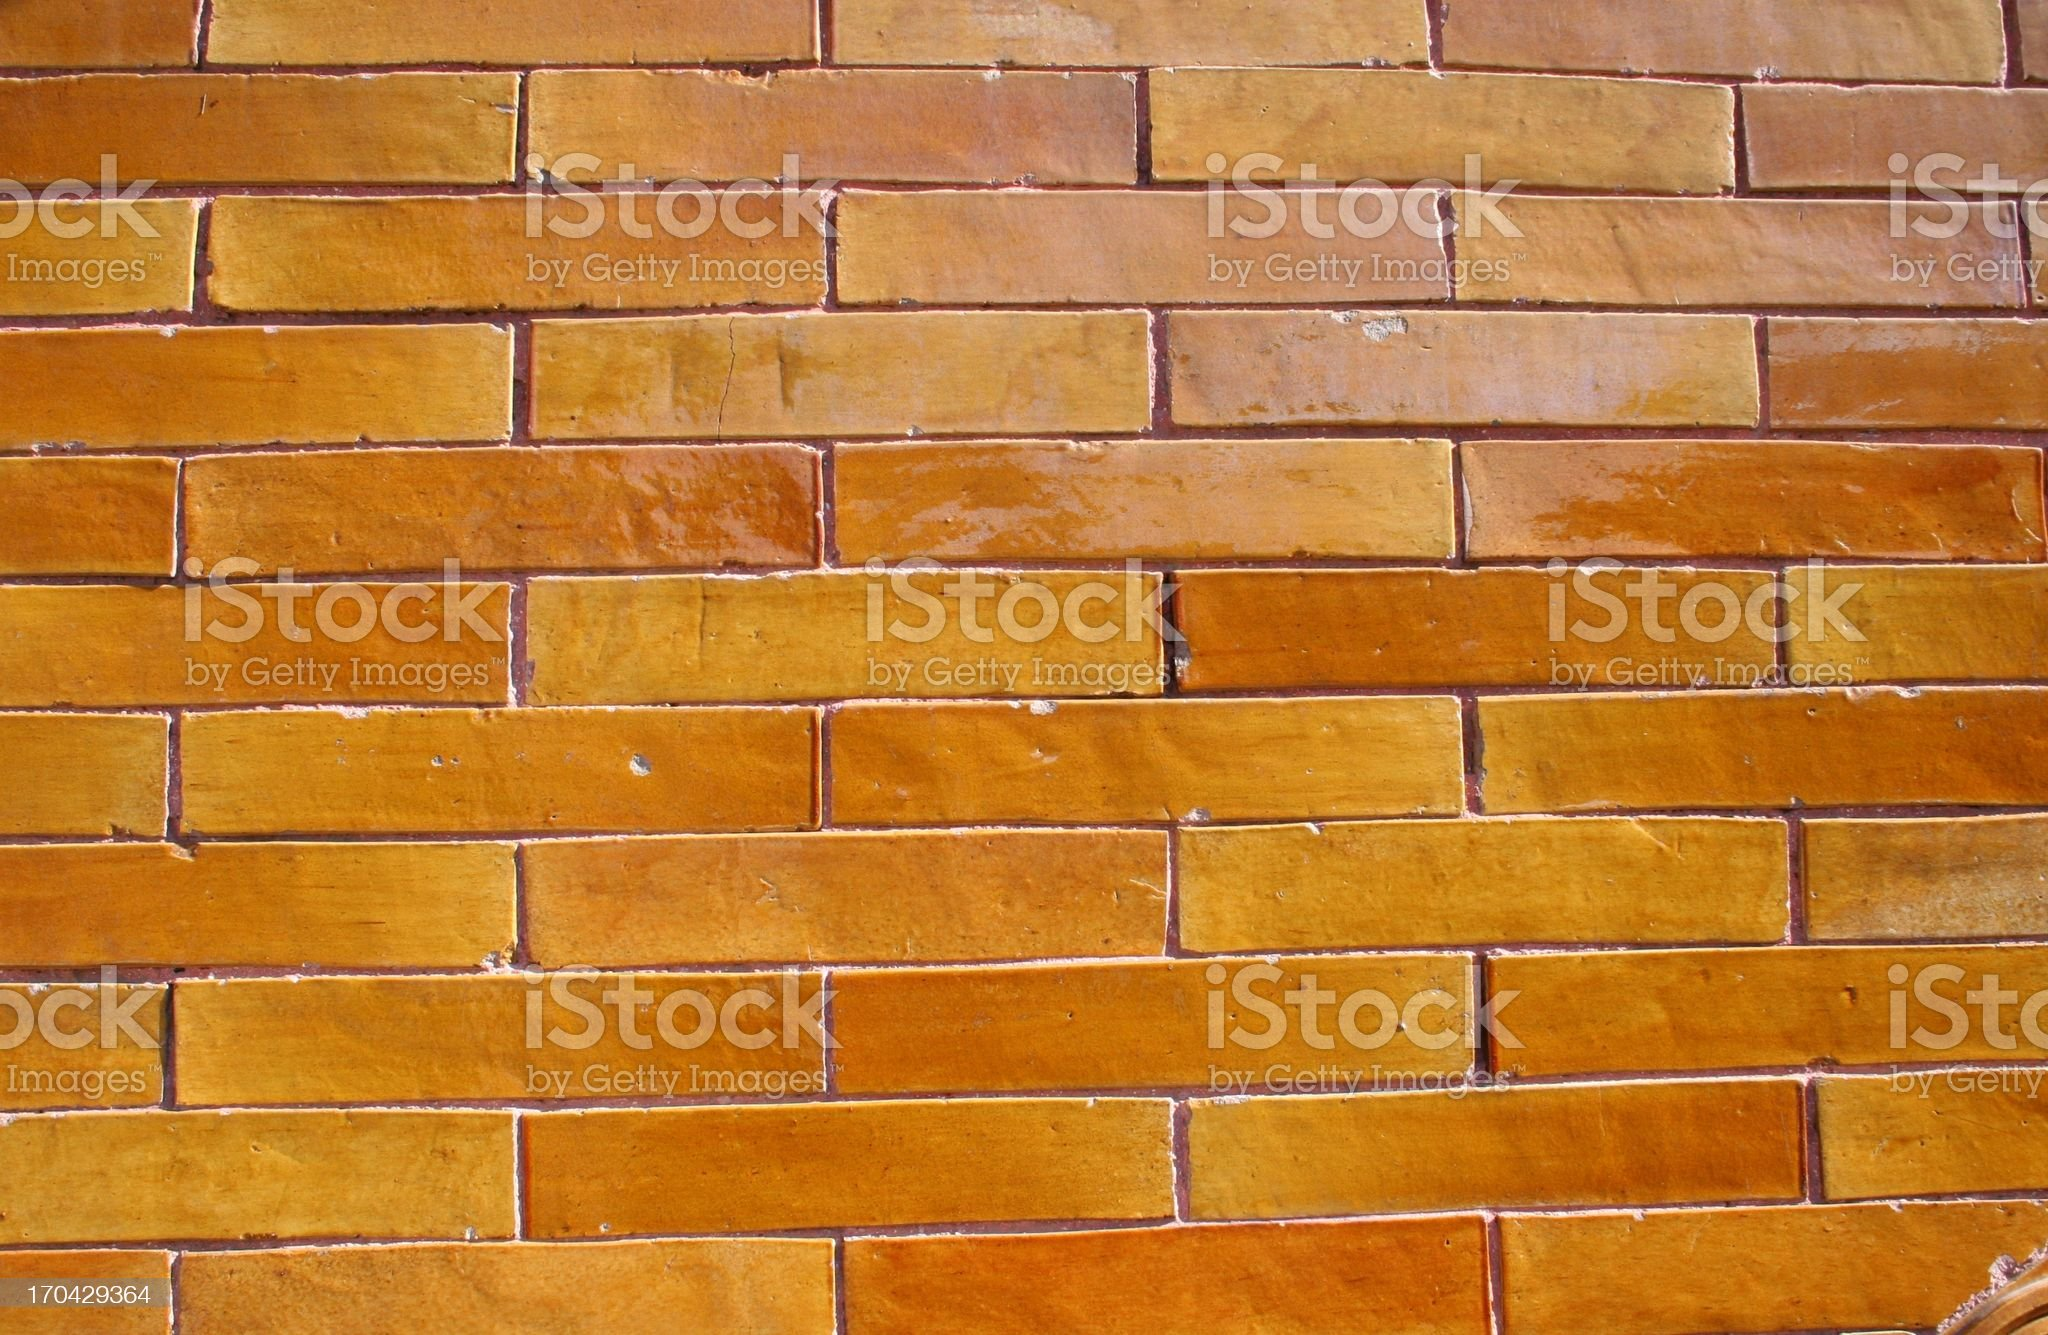 Wall with Yellow Tiles at Imperial Garden, Forbidden City, China royalty-free stock photo